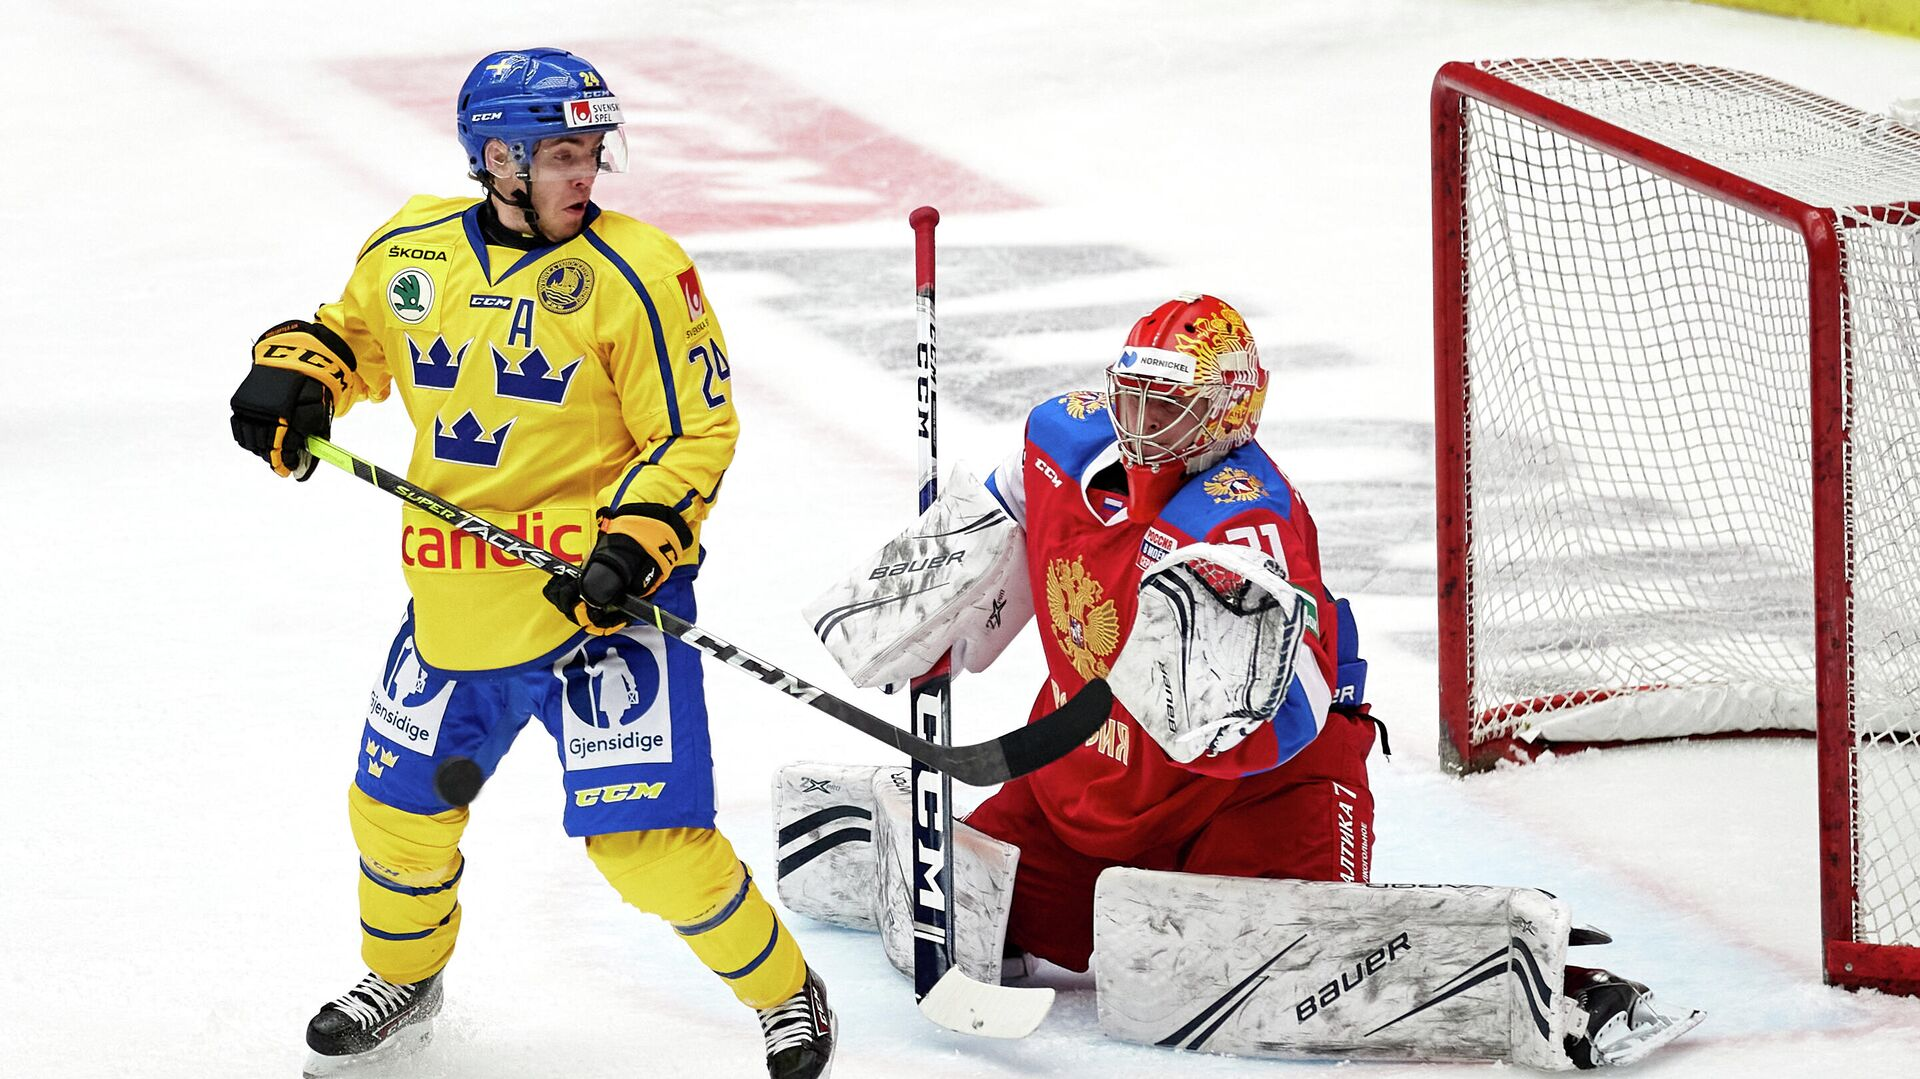 Sweden's Andreas Wingerli (L) and Russia's goalkeeper Alexander Samonov vie during the Beijer Hockey Games (Euro Hockey Tour) ice hockey match between Sweden and Russia in Malmo on February 13, 2021. (Photo by Anders Bjuro / TT NEWS AGENCY / AFP) / Sweden OUT - РИА Новости, 1920, 13.02.2021